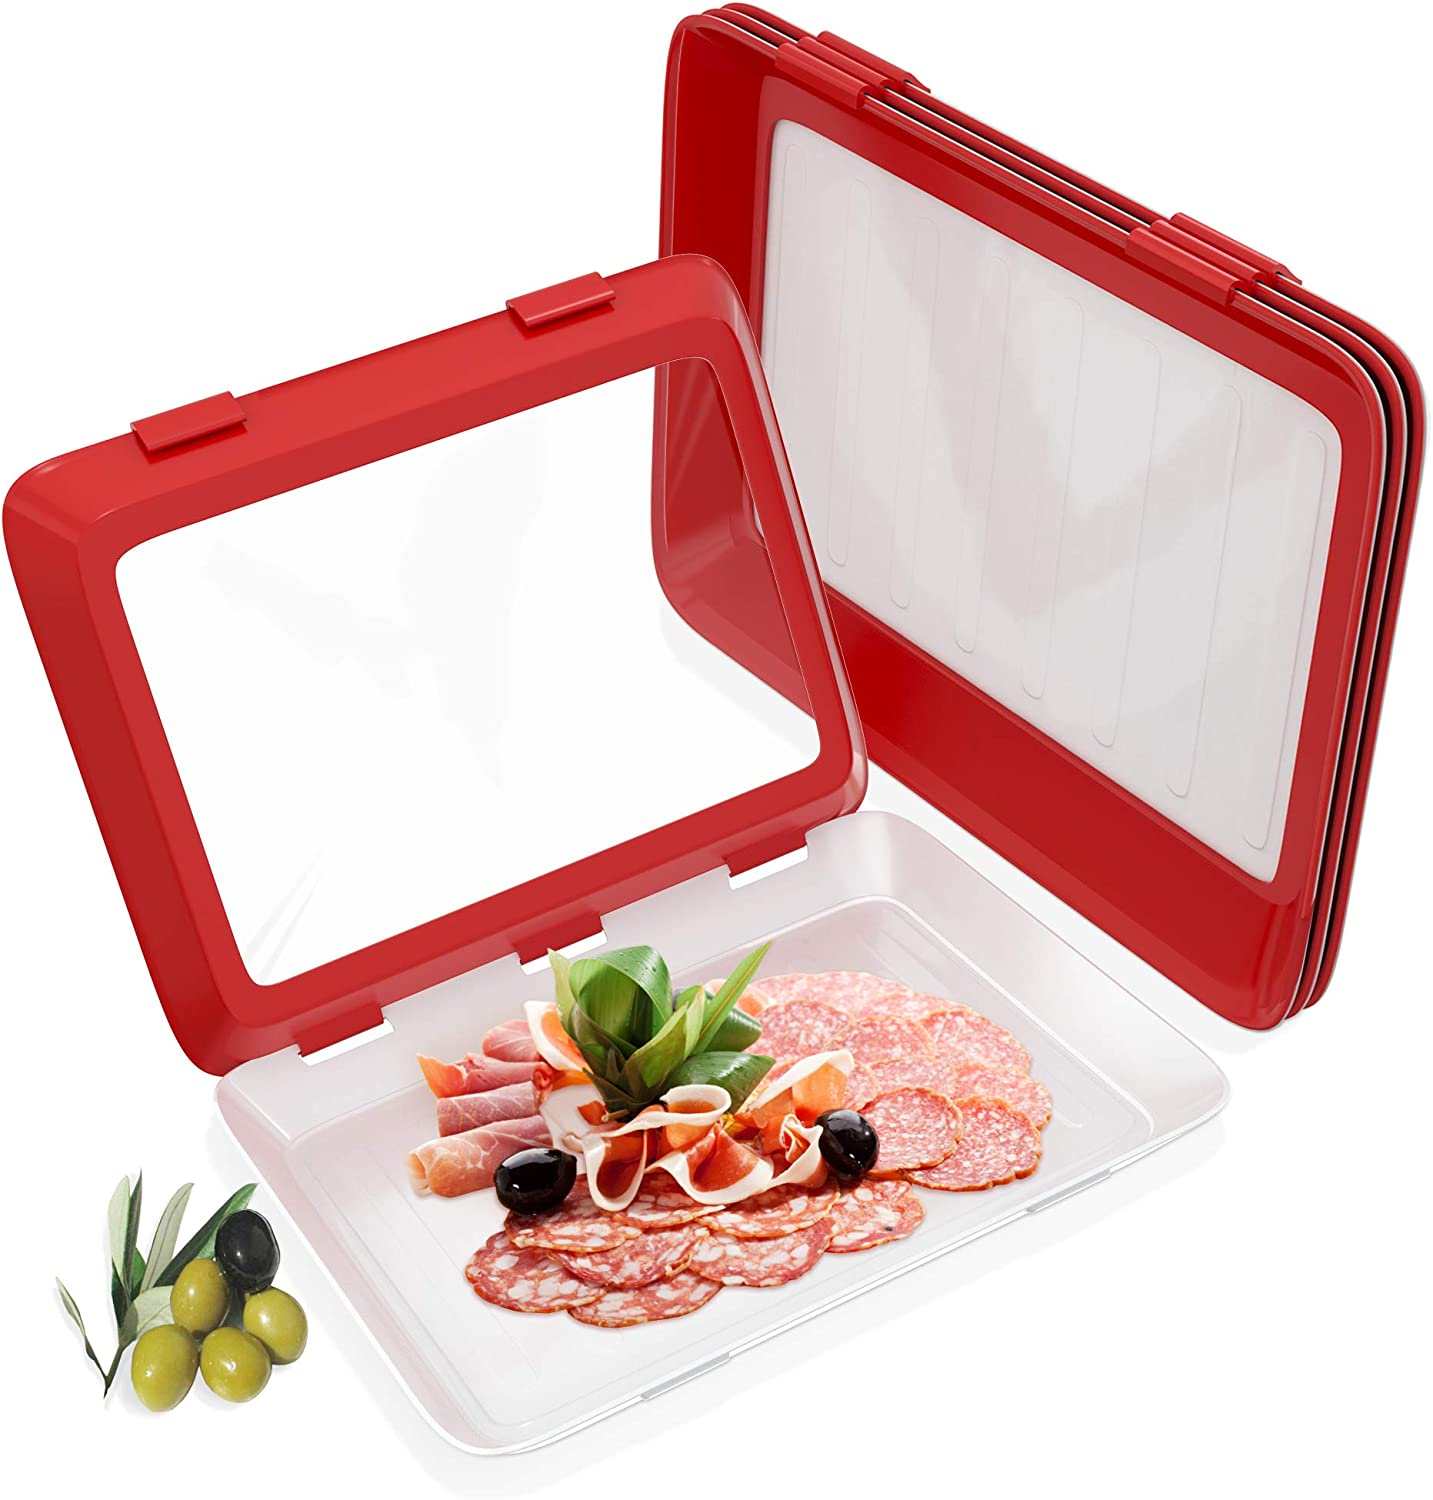 Food Tray Stackable Creative Food Preservation, Kitchen Food Preservation Tray, Plastic Food Storage Container with Elastic Reusable Locking Lid for Refrigerator and Freezer Flat Food (red)